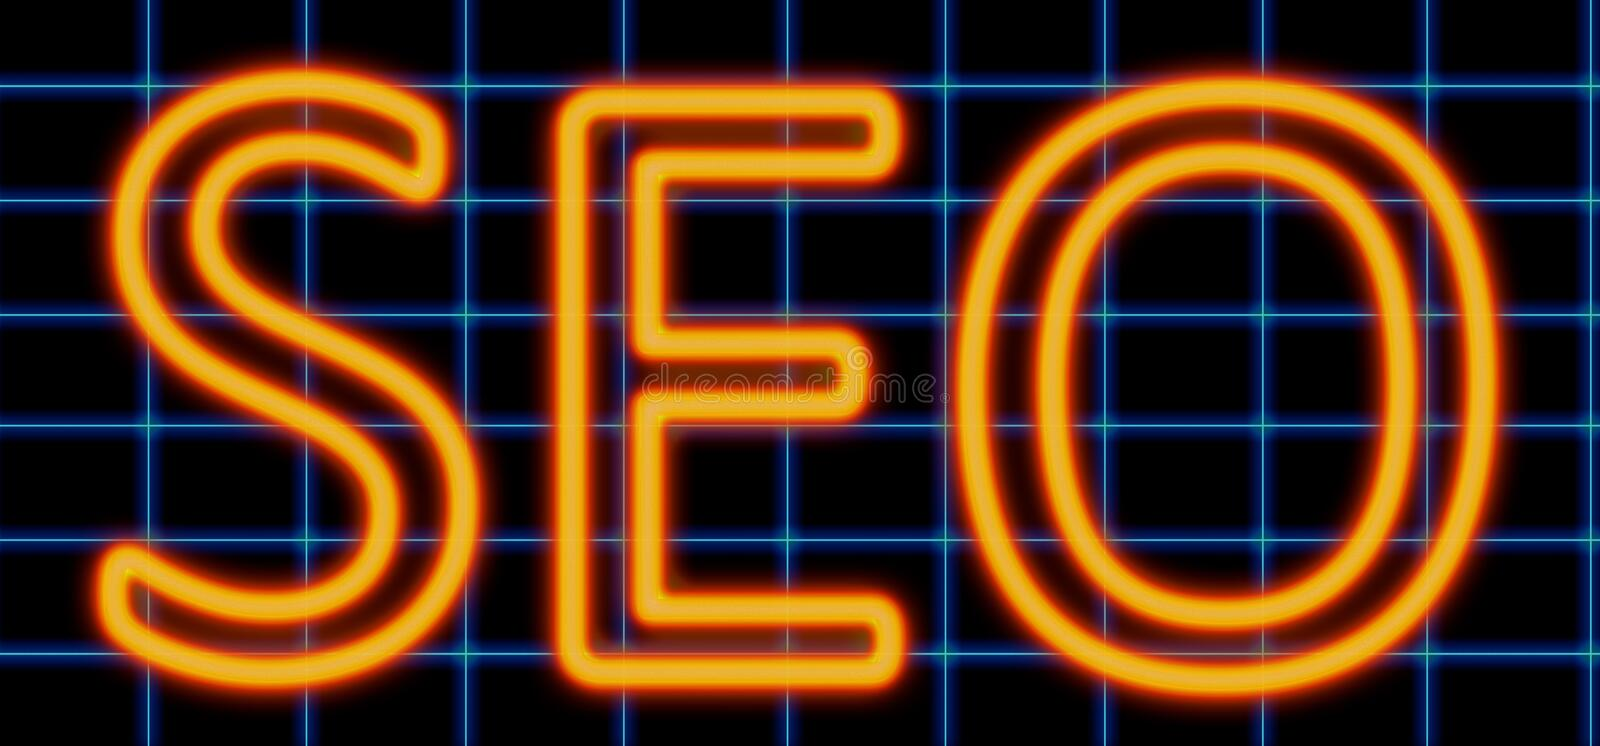 Seo neon sign royalty free illustration